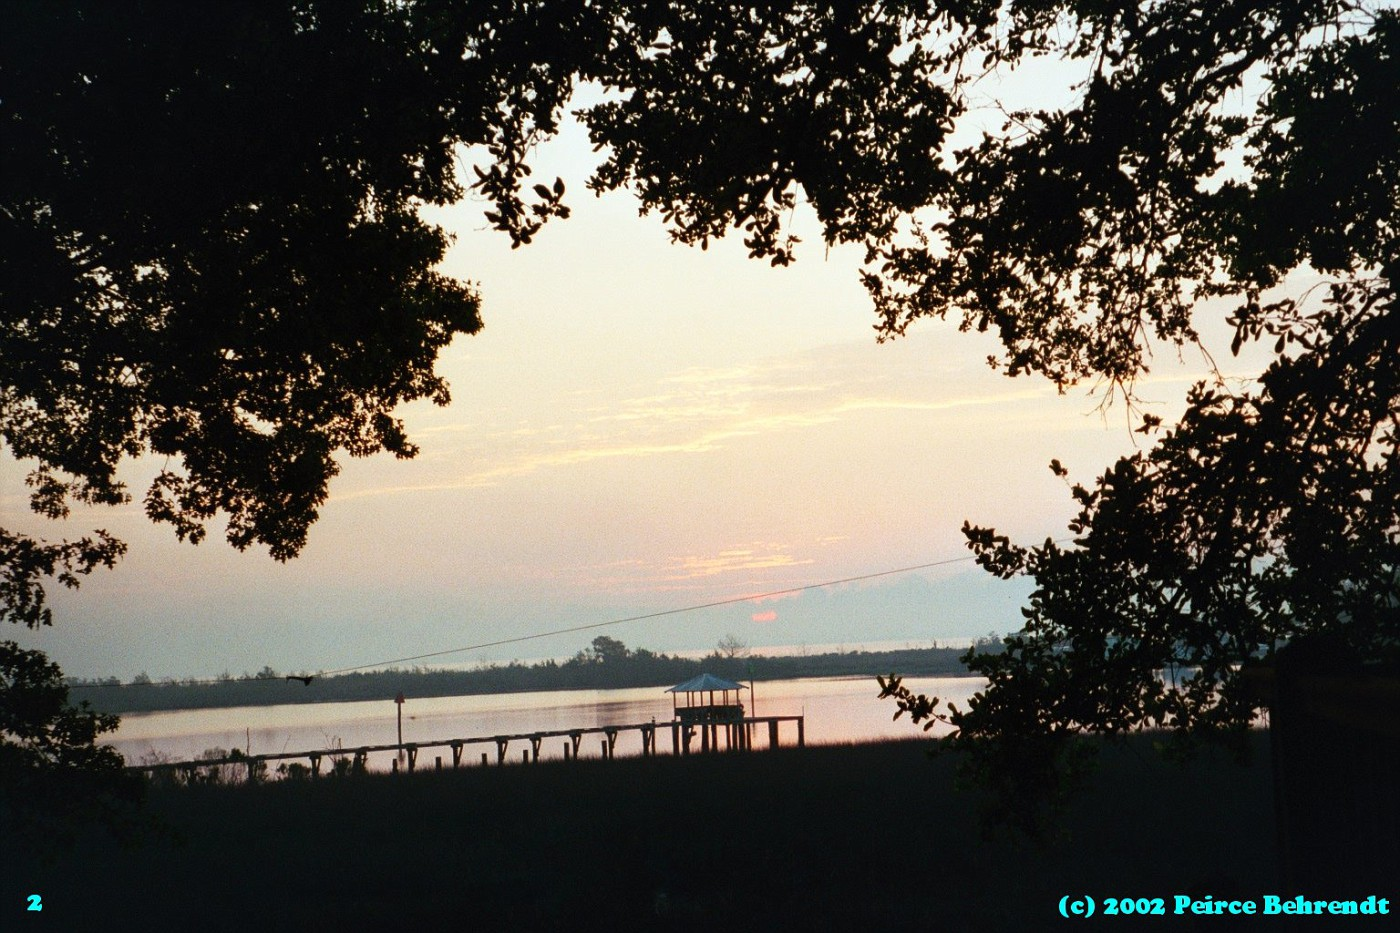 Sunrise on Mobile Bay, 2 of 4